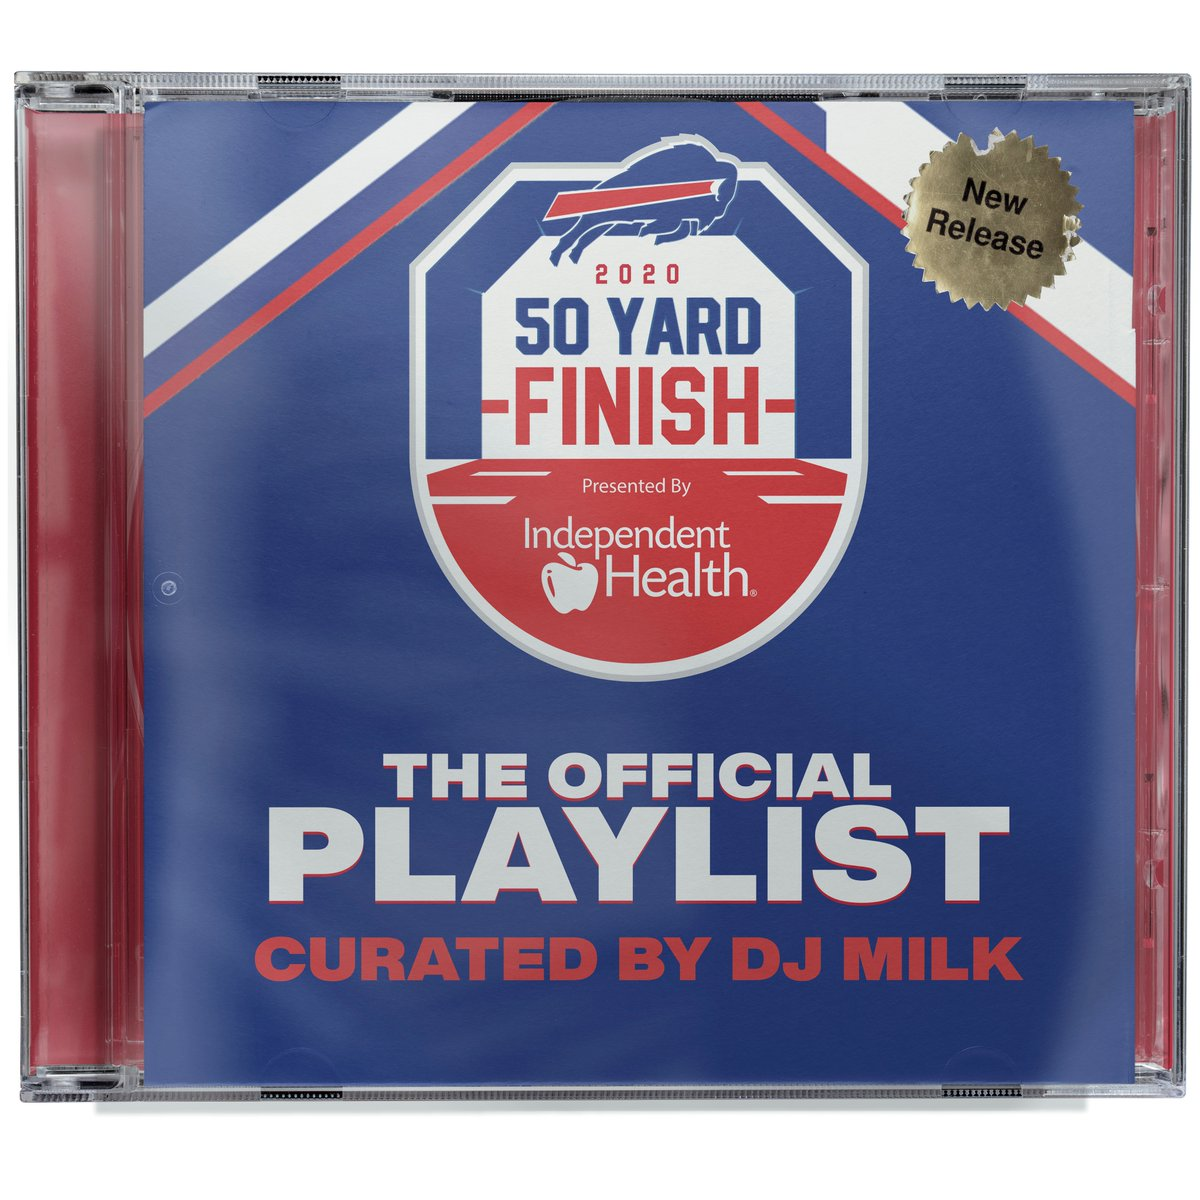 From @DjMilkBuffalo's studio to your headphones.  Download the official #50YardFinish playlist: https://t.co/RrfCLMMUwT https://t.co/jV9SgGsYZN